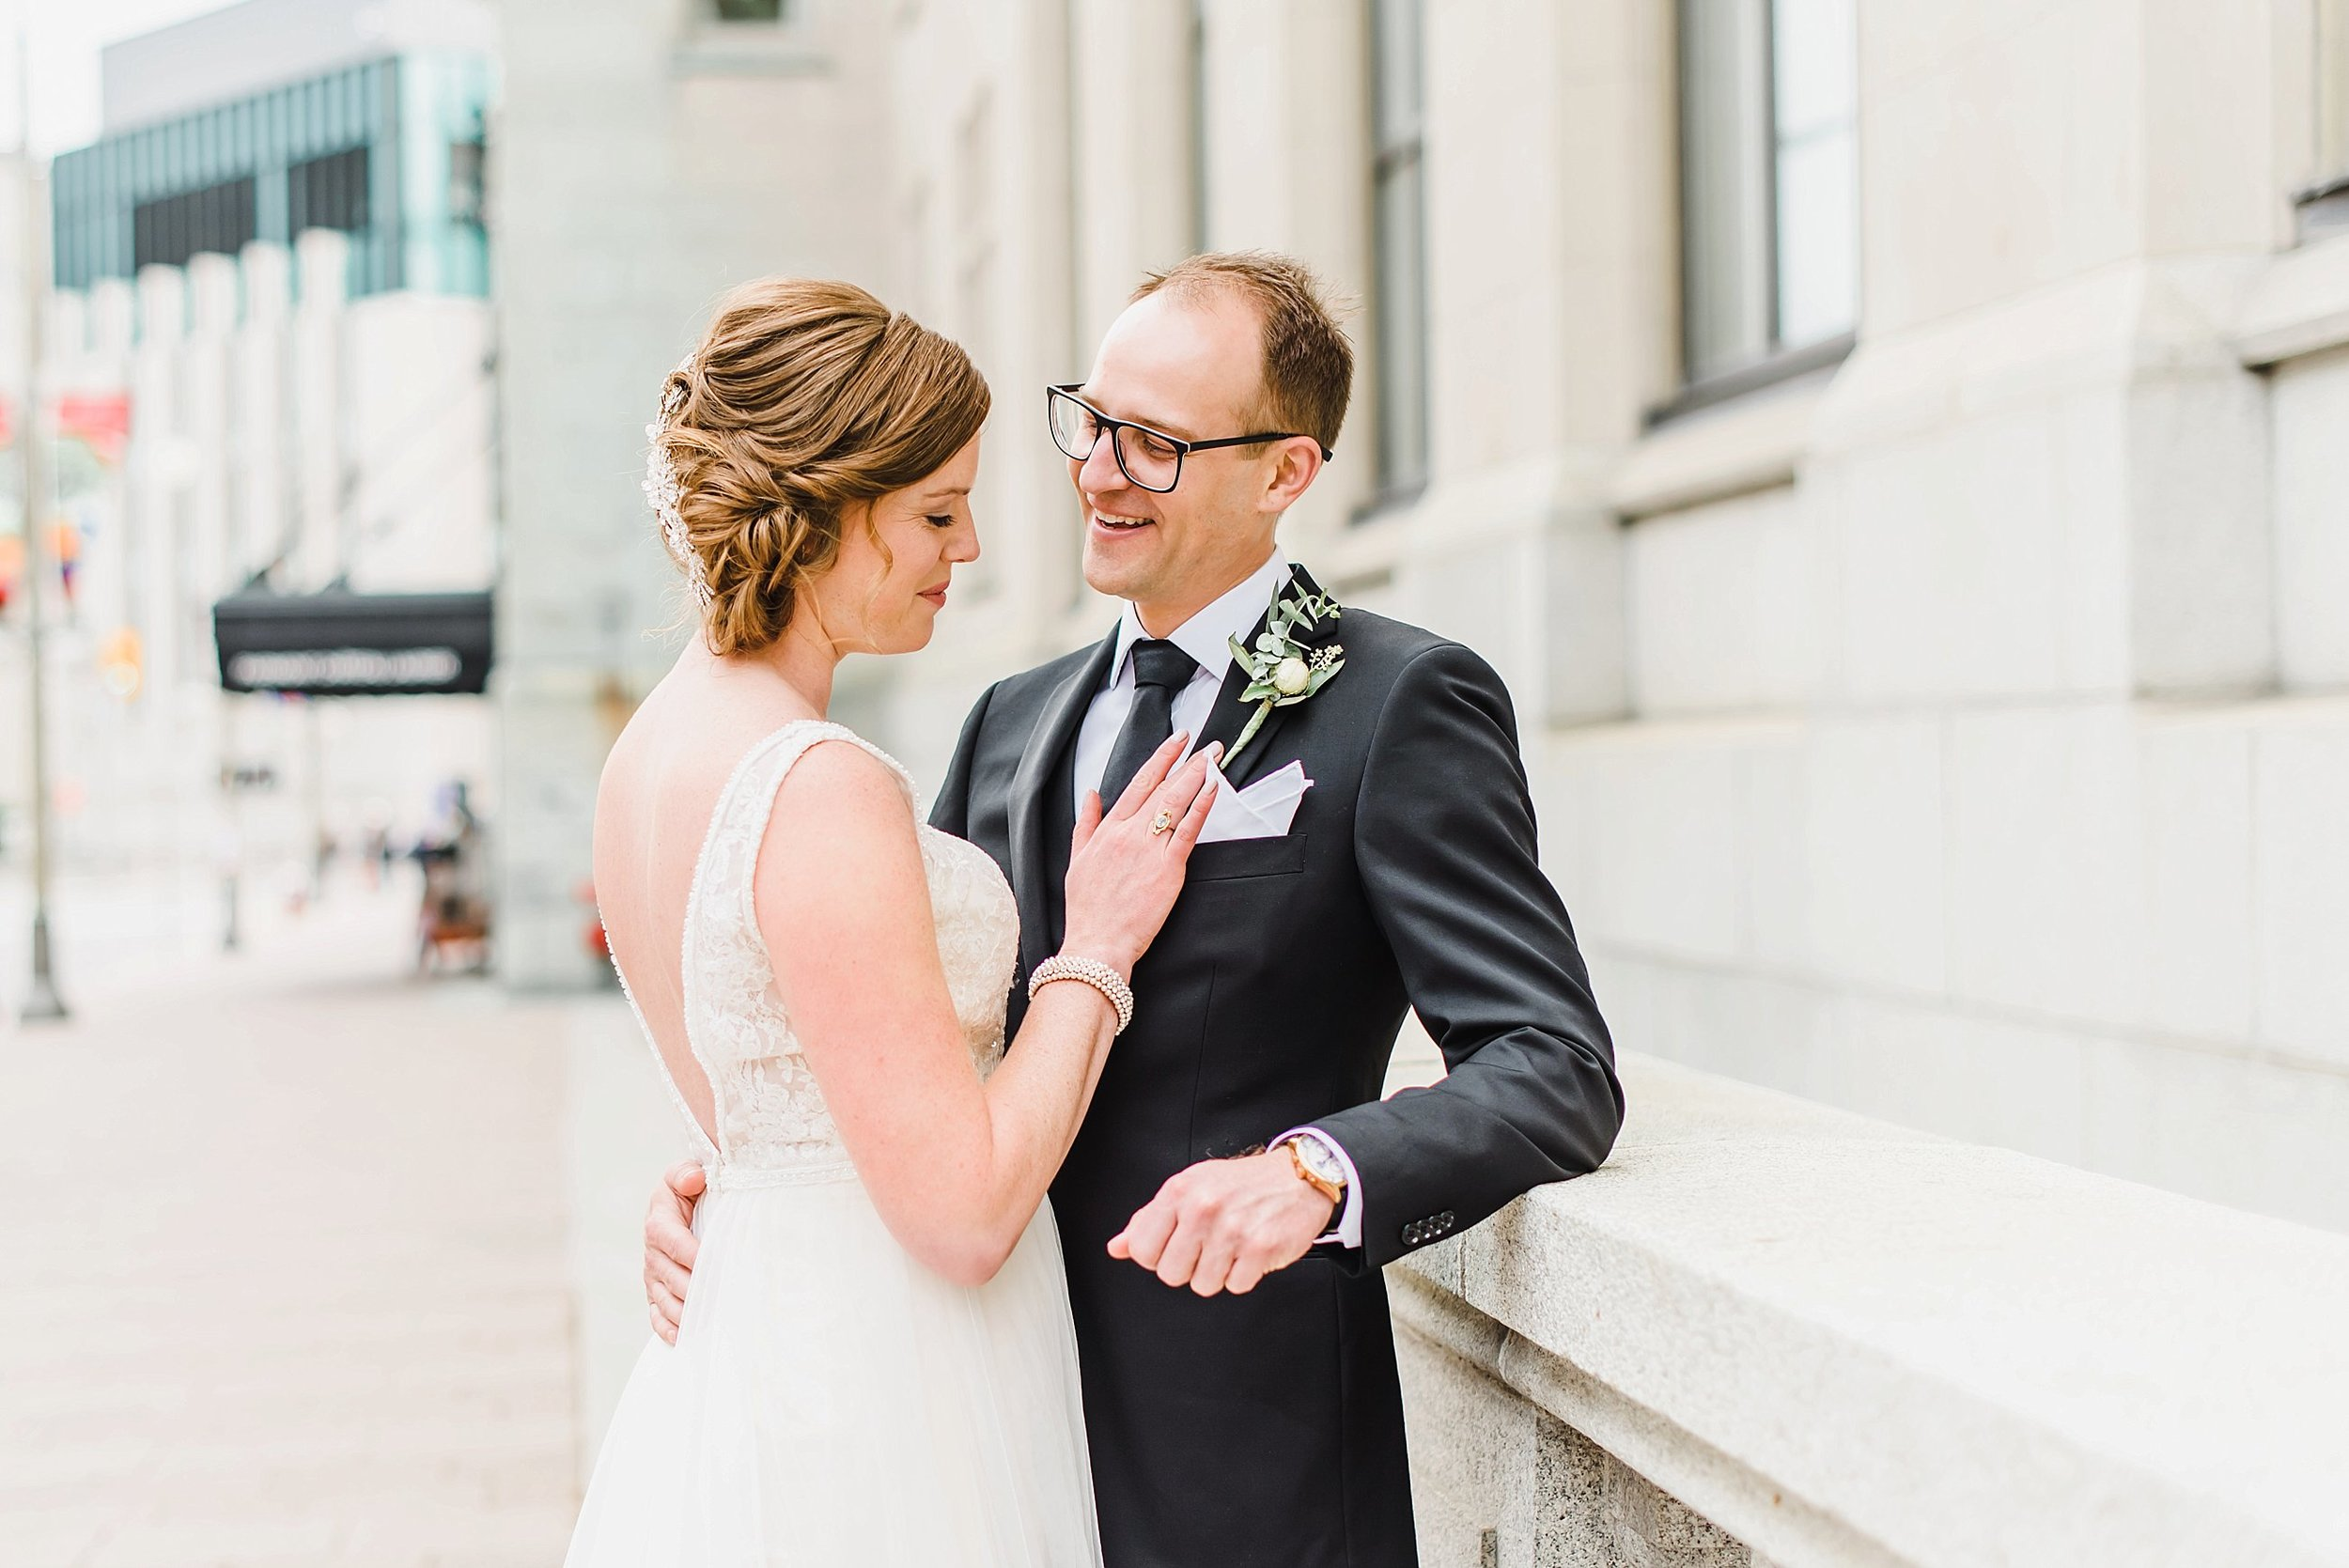 light airy indie fine art ottawa wedding photographer | Ali and Batoul Photography_0326.jpg